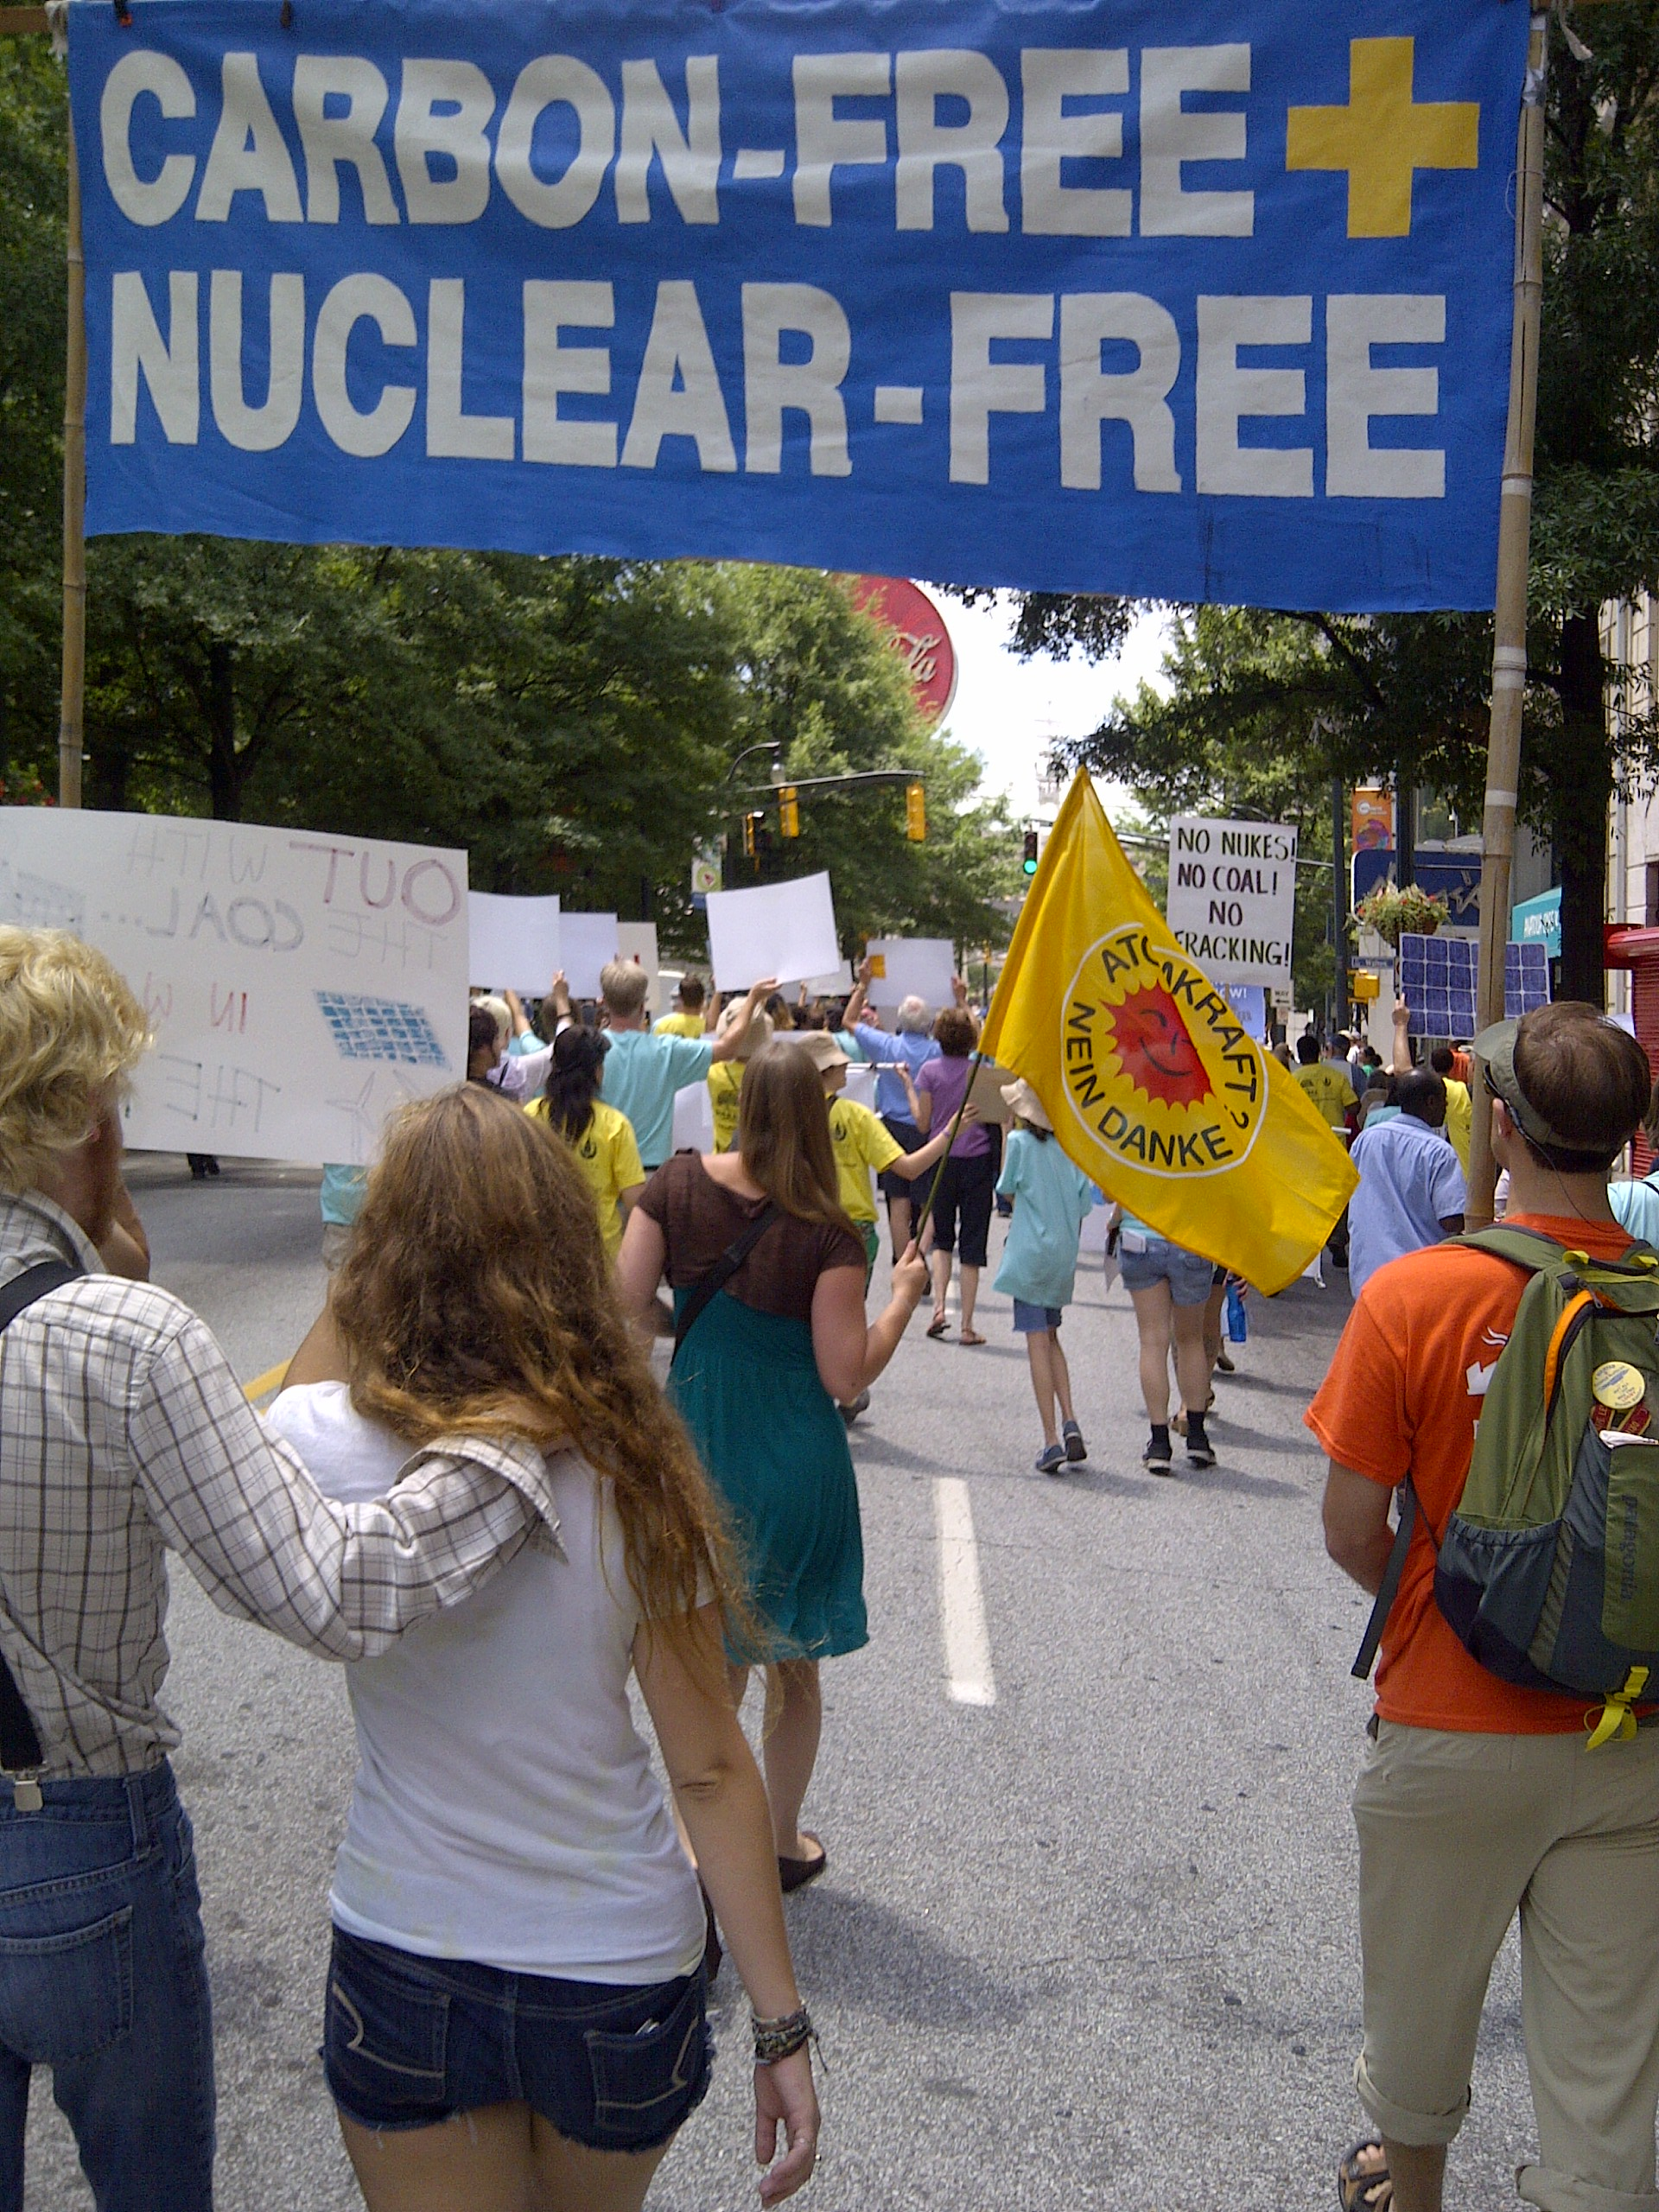 Nuclear-Free, Carbon-Free protestors at the July 29 EPA hearing on its Clean Power Plan in Atlanta.